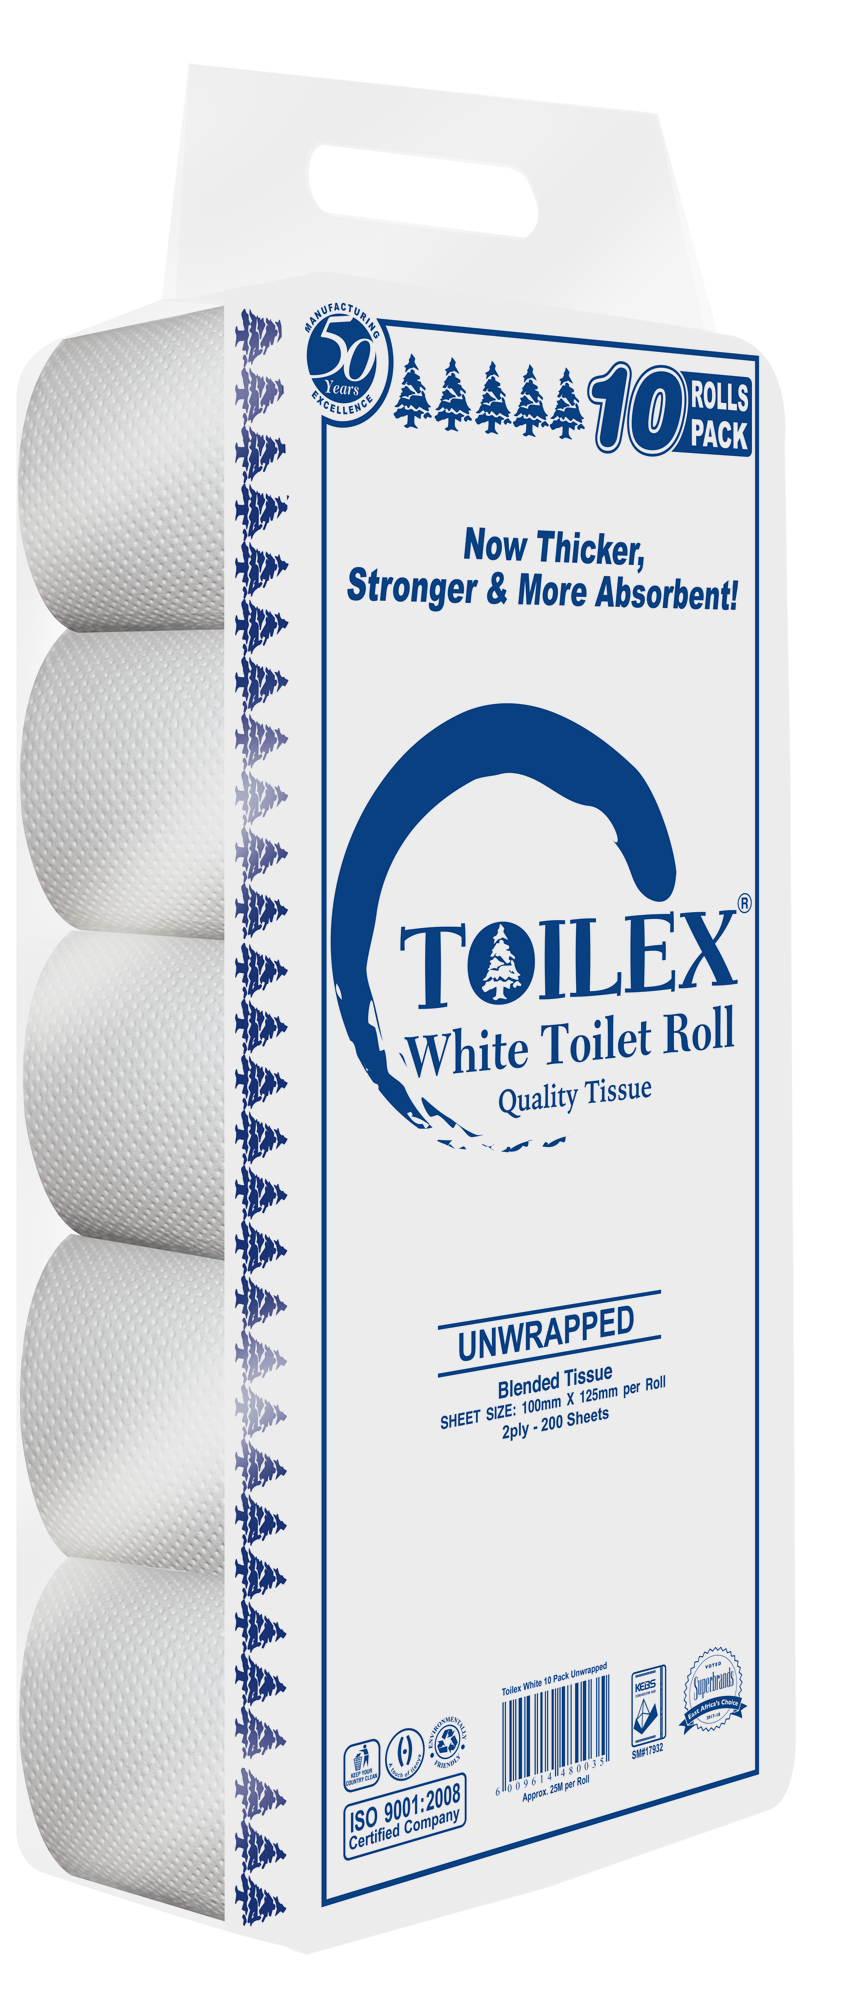 Toilex-10pack.png - 10.5710.5.45 kb